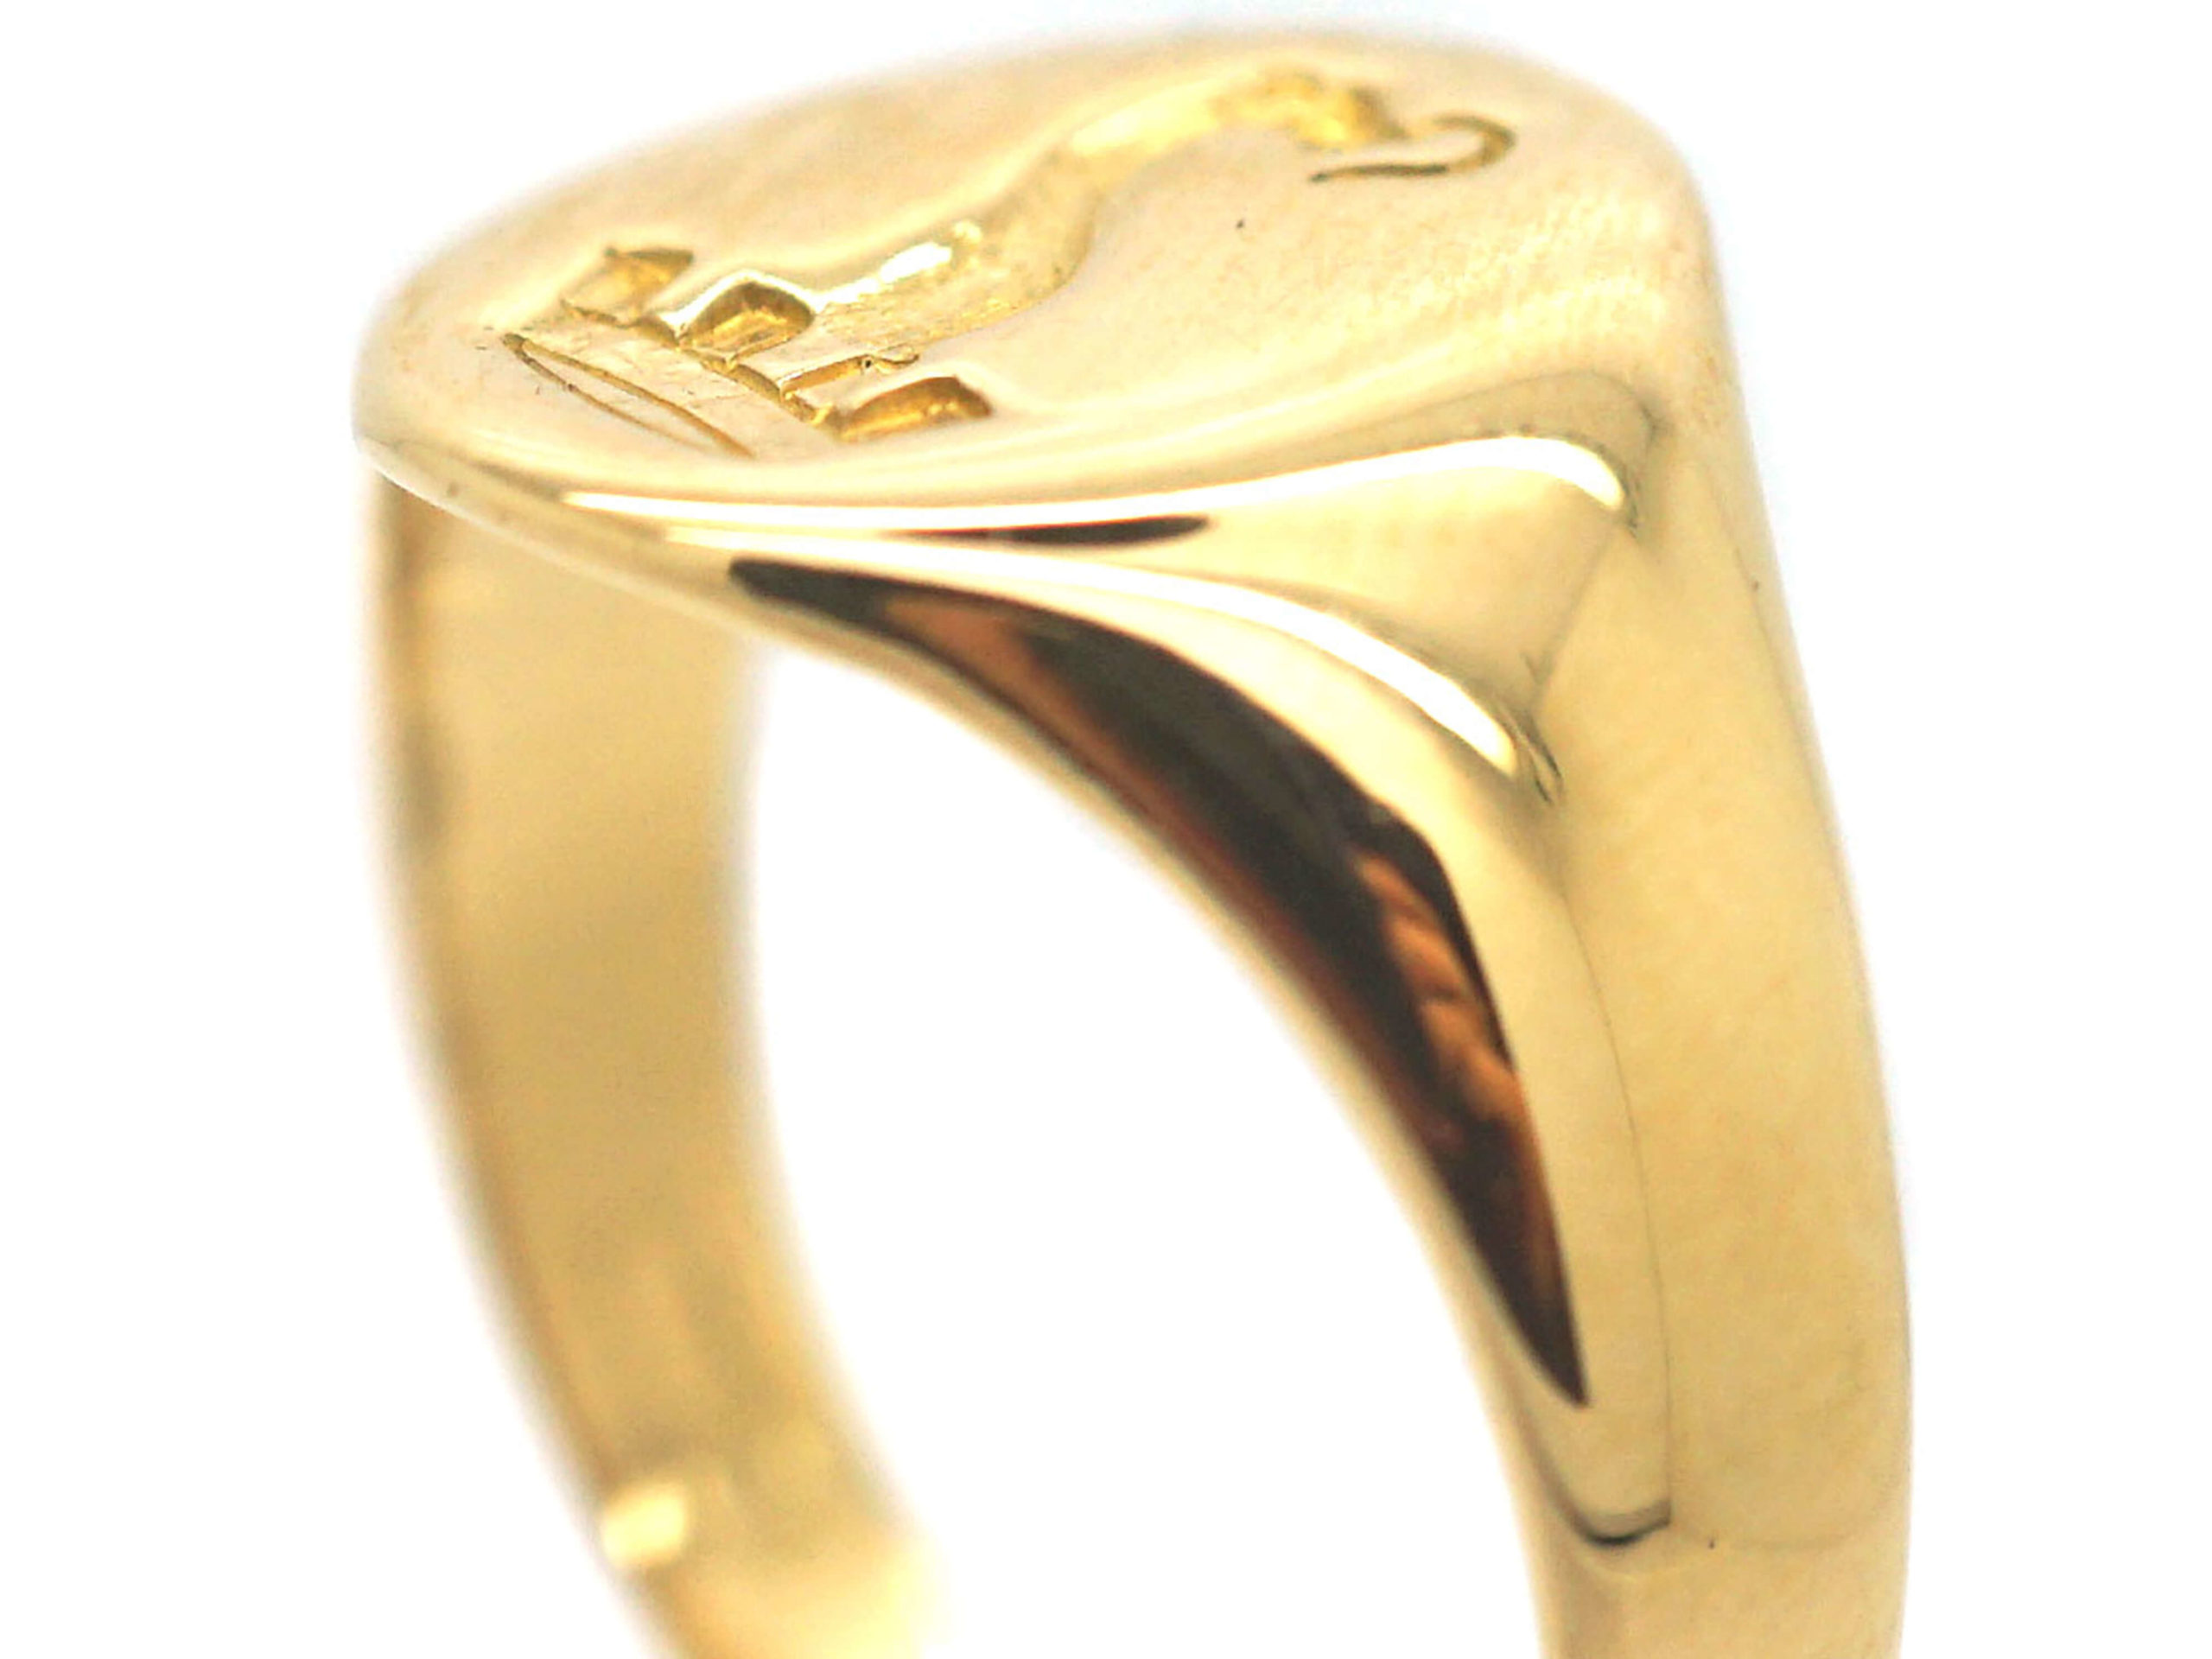 18ct Gold Signet Ring with Intaglio of a Serpent & Crown